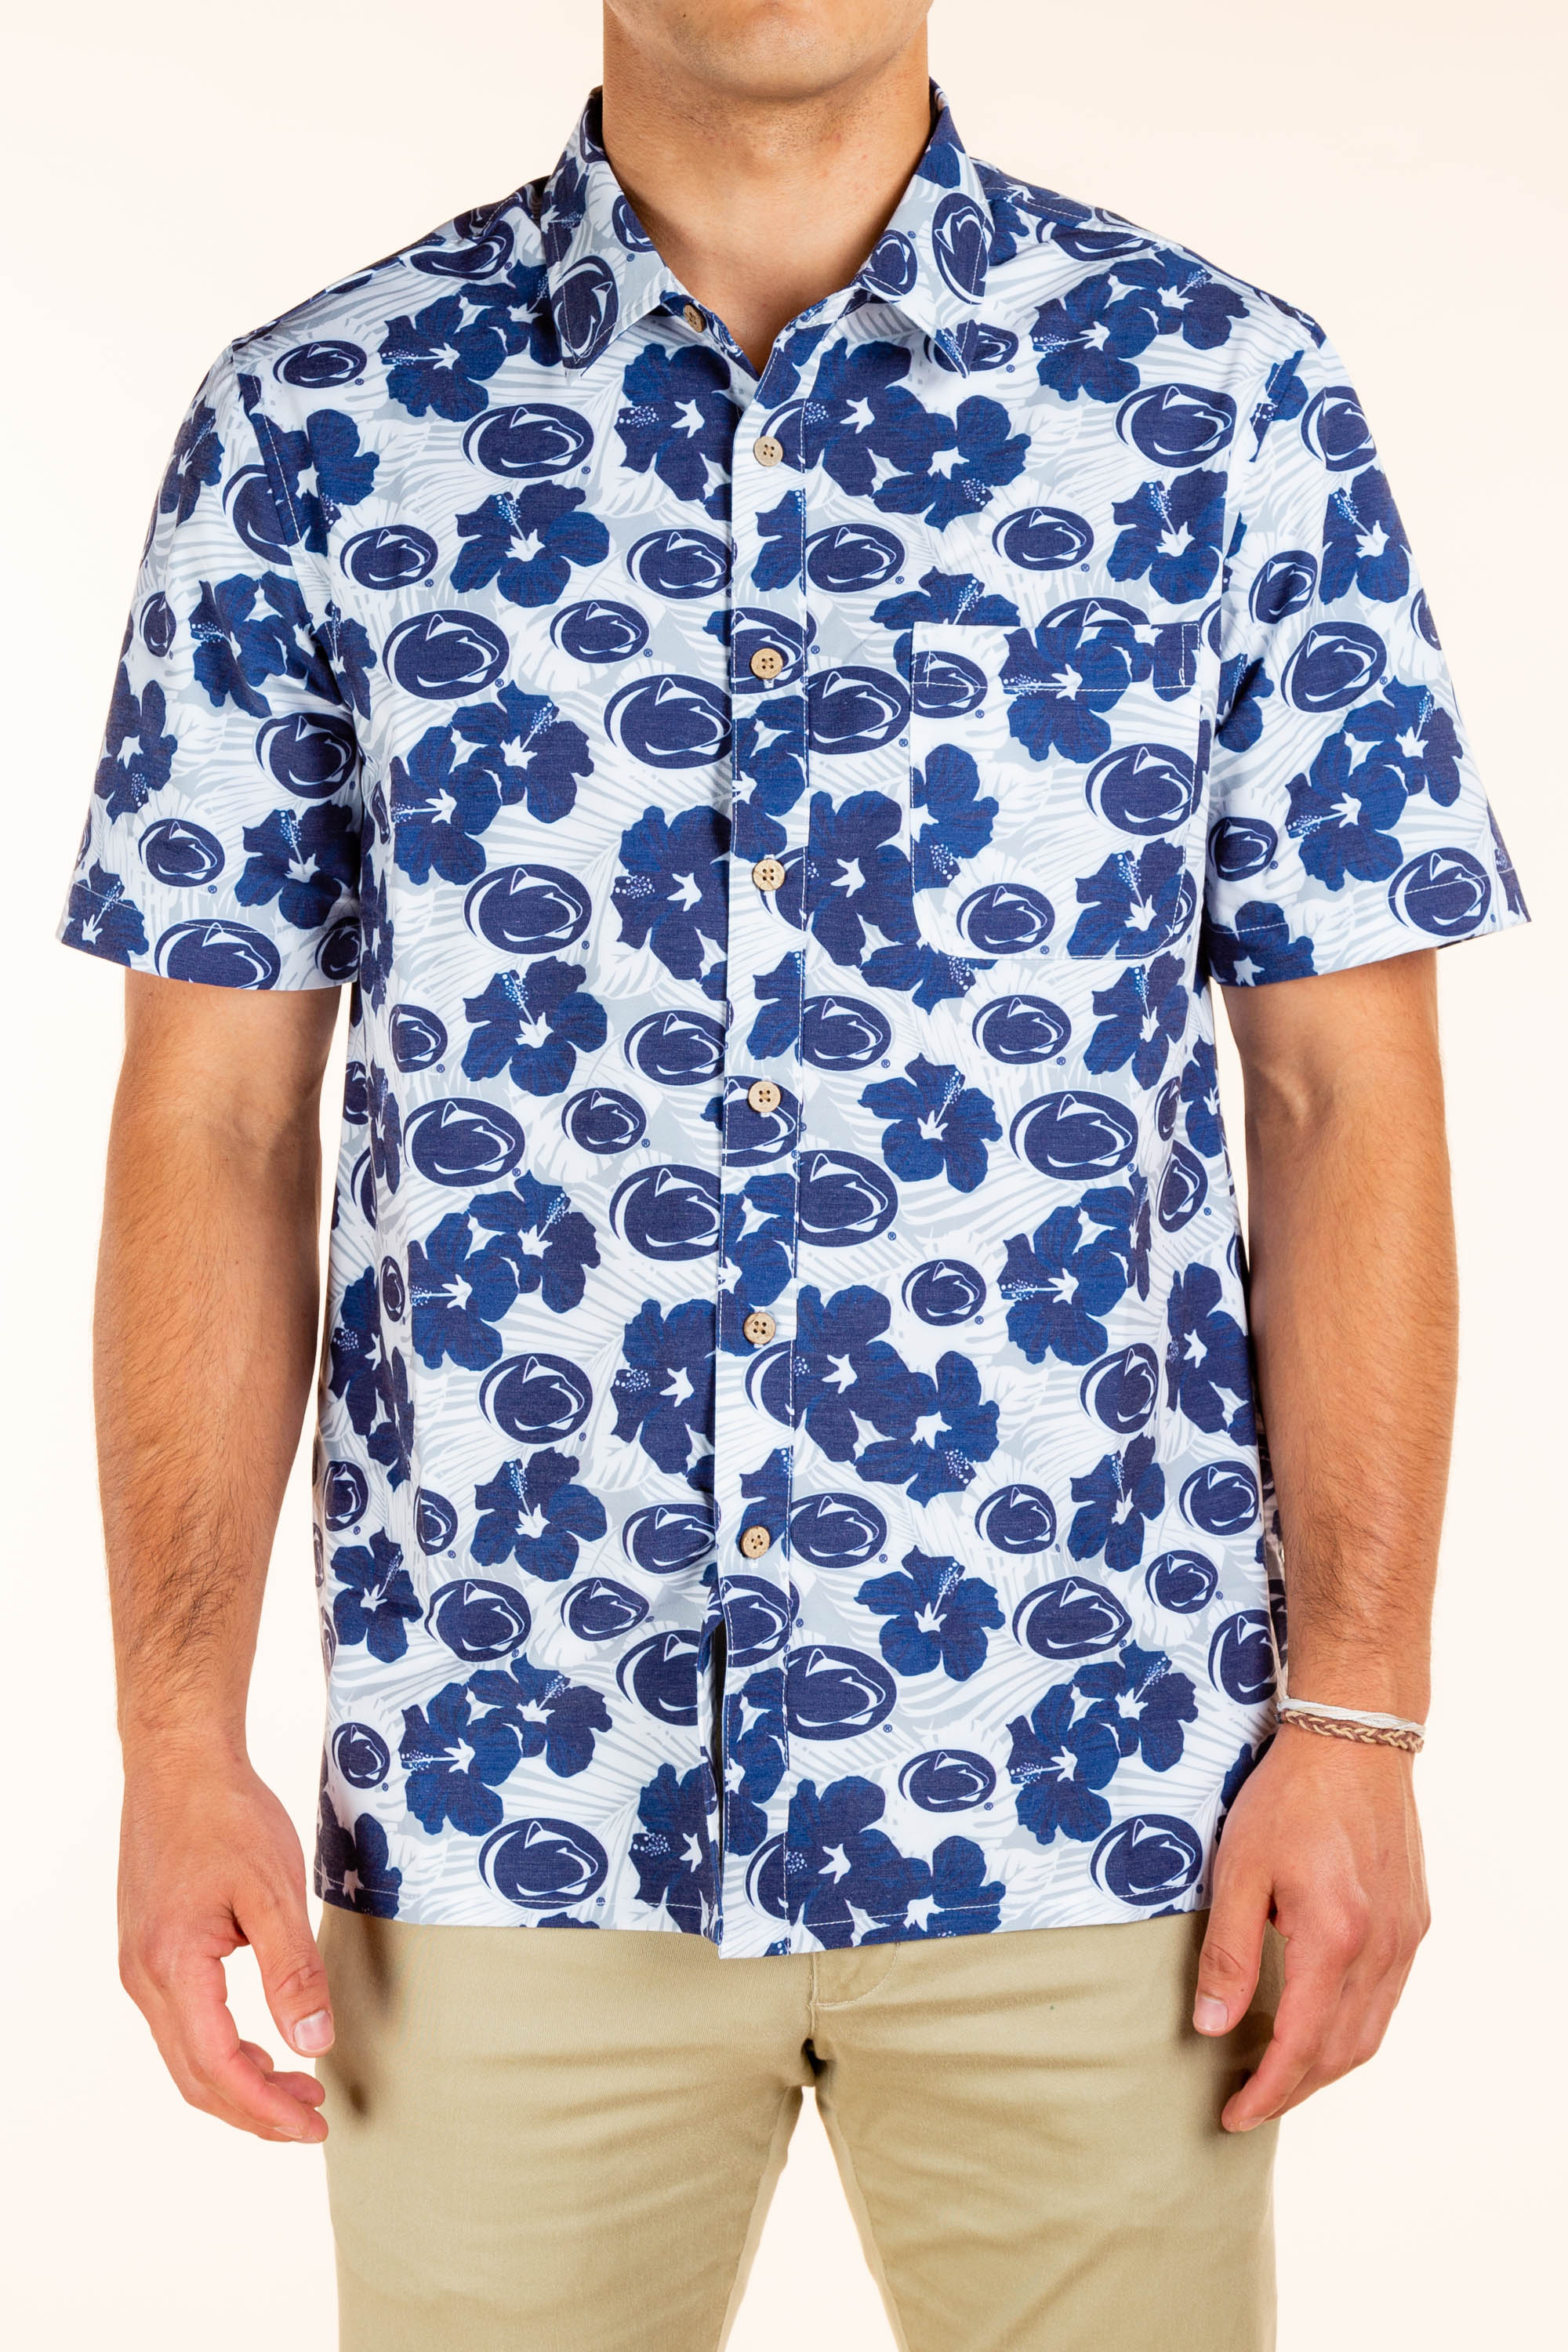 Men's Penn State Button Up Shirt